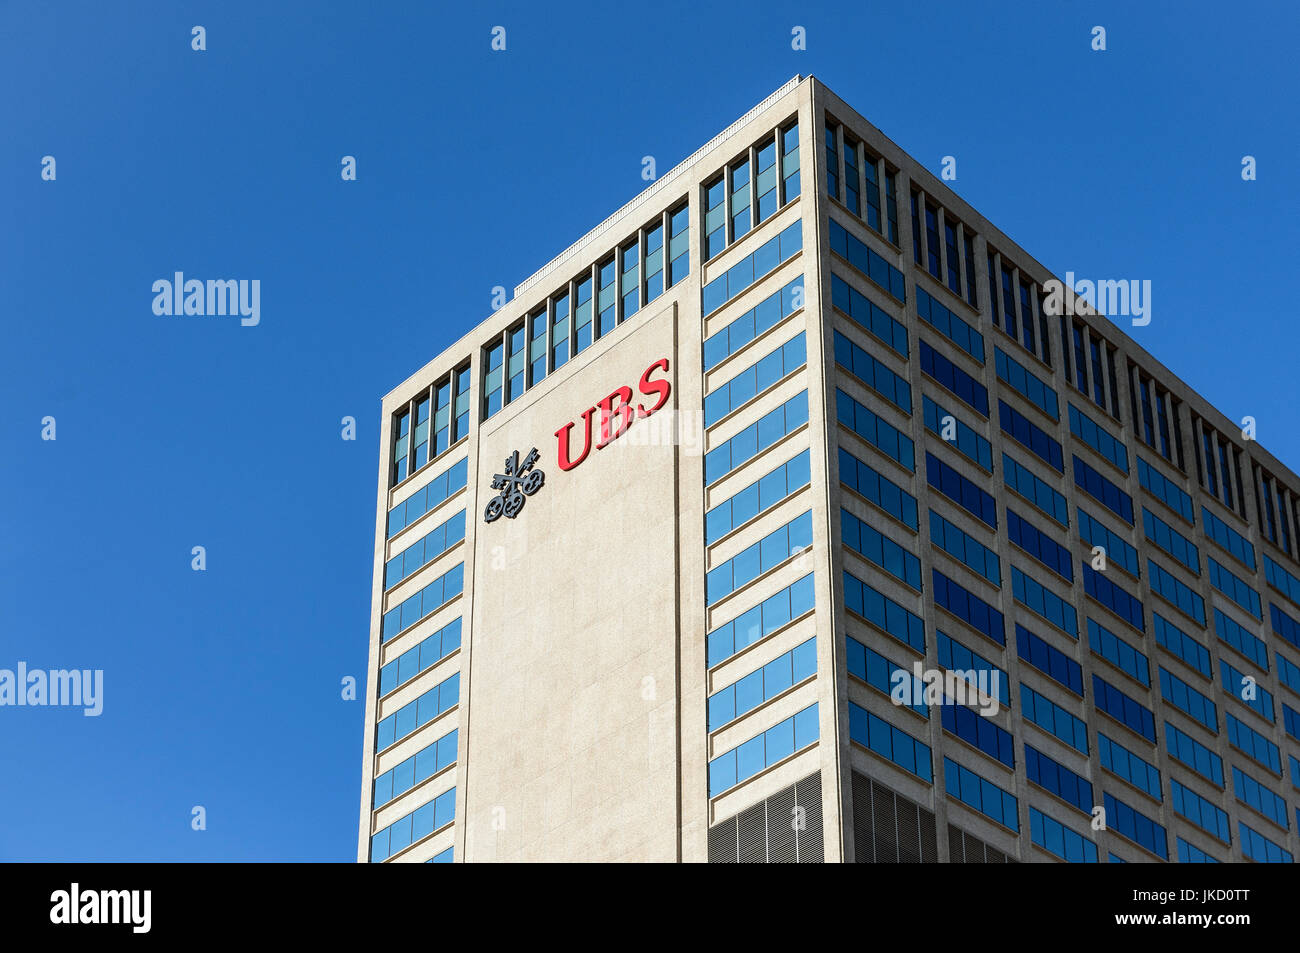 UBS financial services company office building, Nashville, Tennessee, USA. - Stock Image